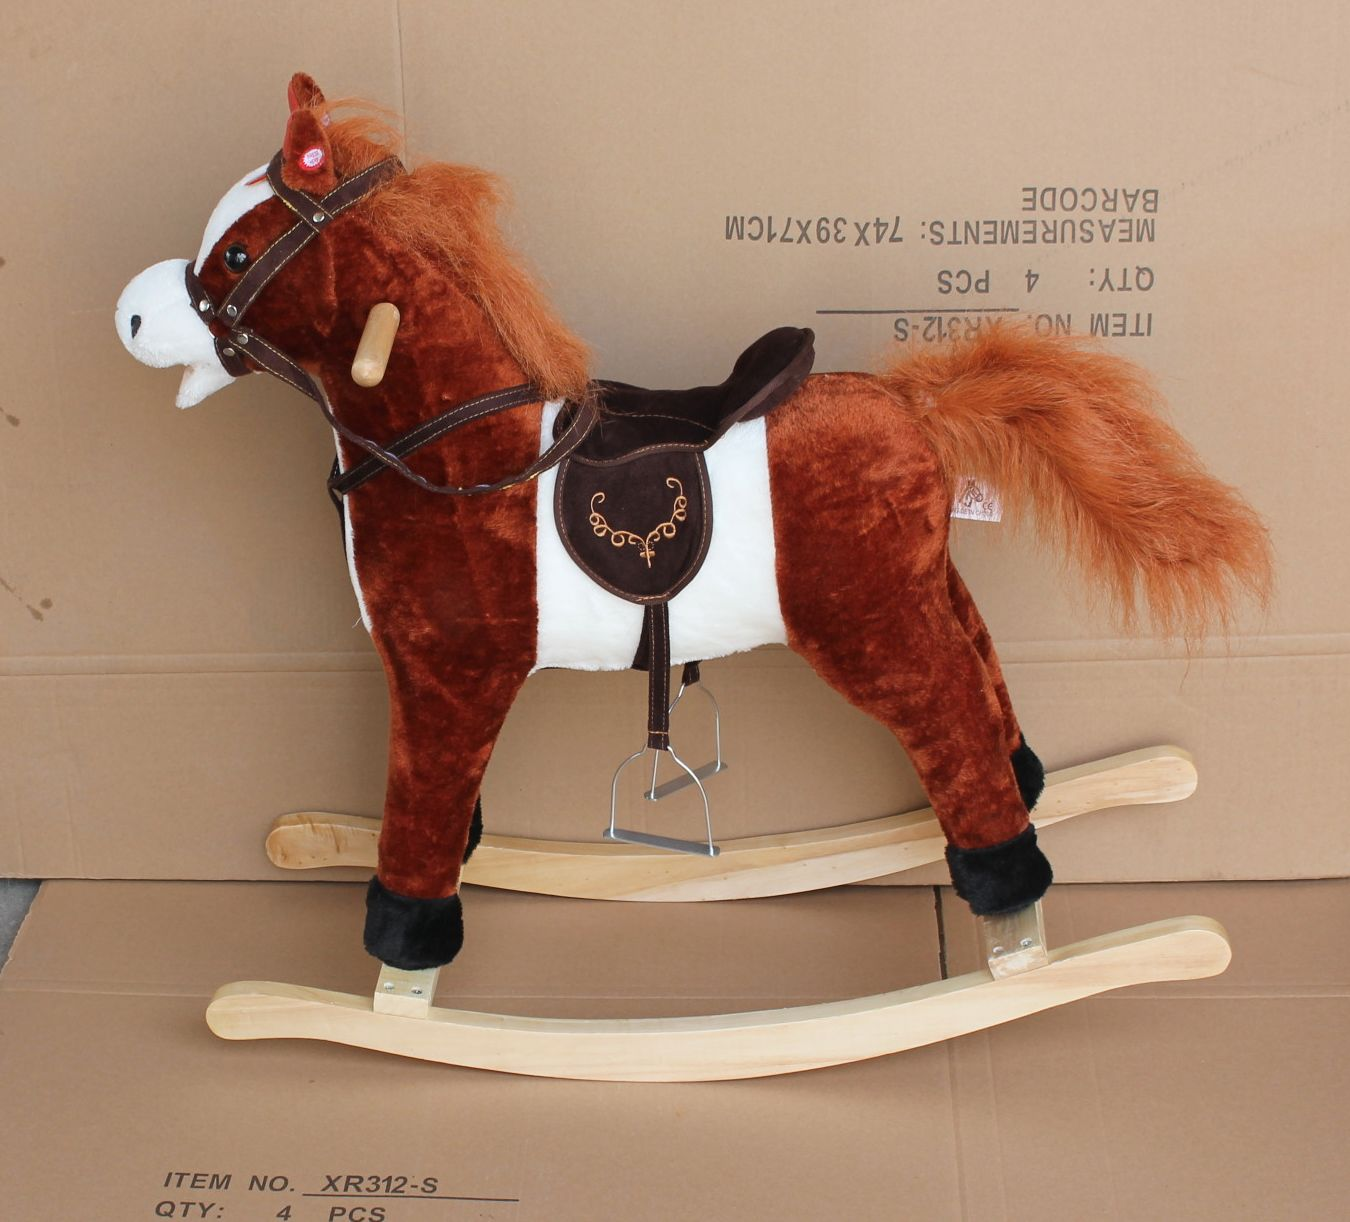 78x28x68cm promotional customized children brown/white plush rocking horse toy with dark brown saddle&wooden base